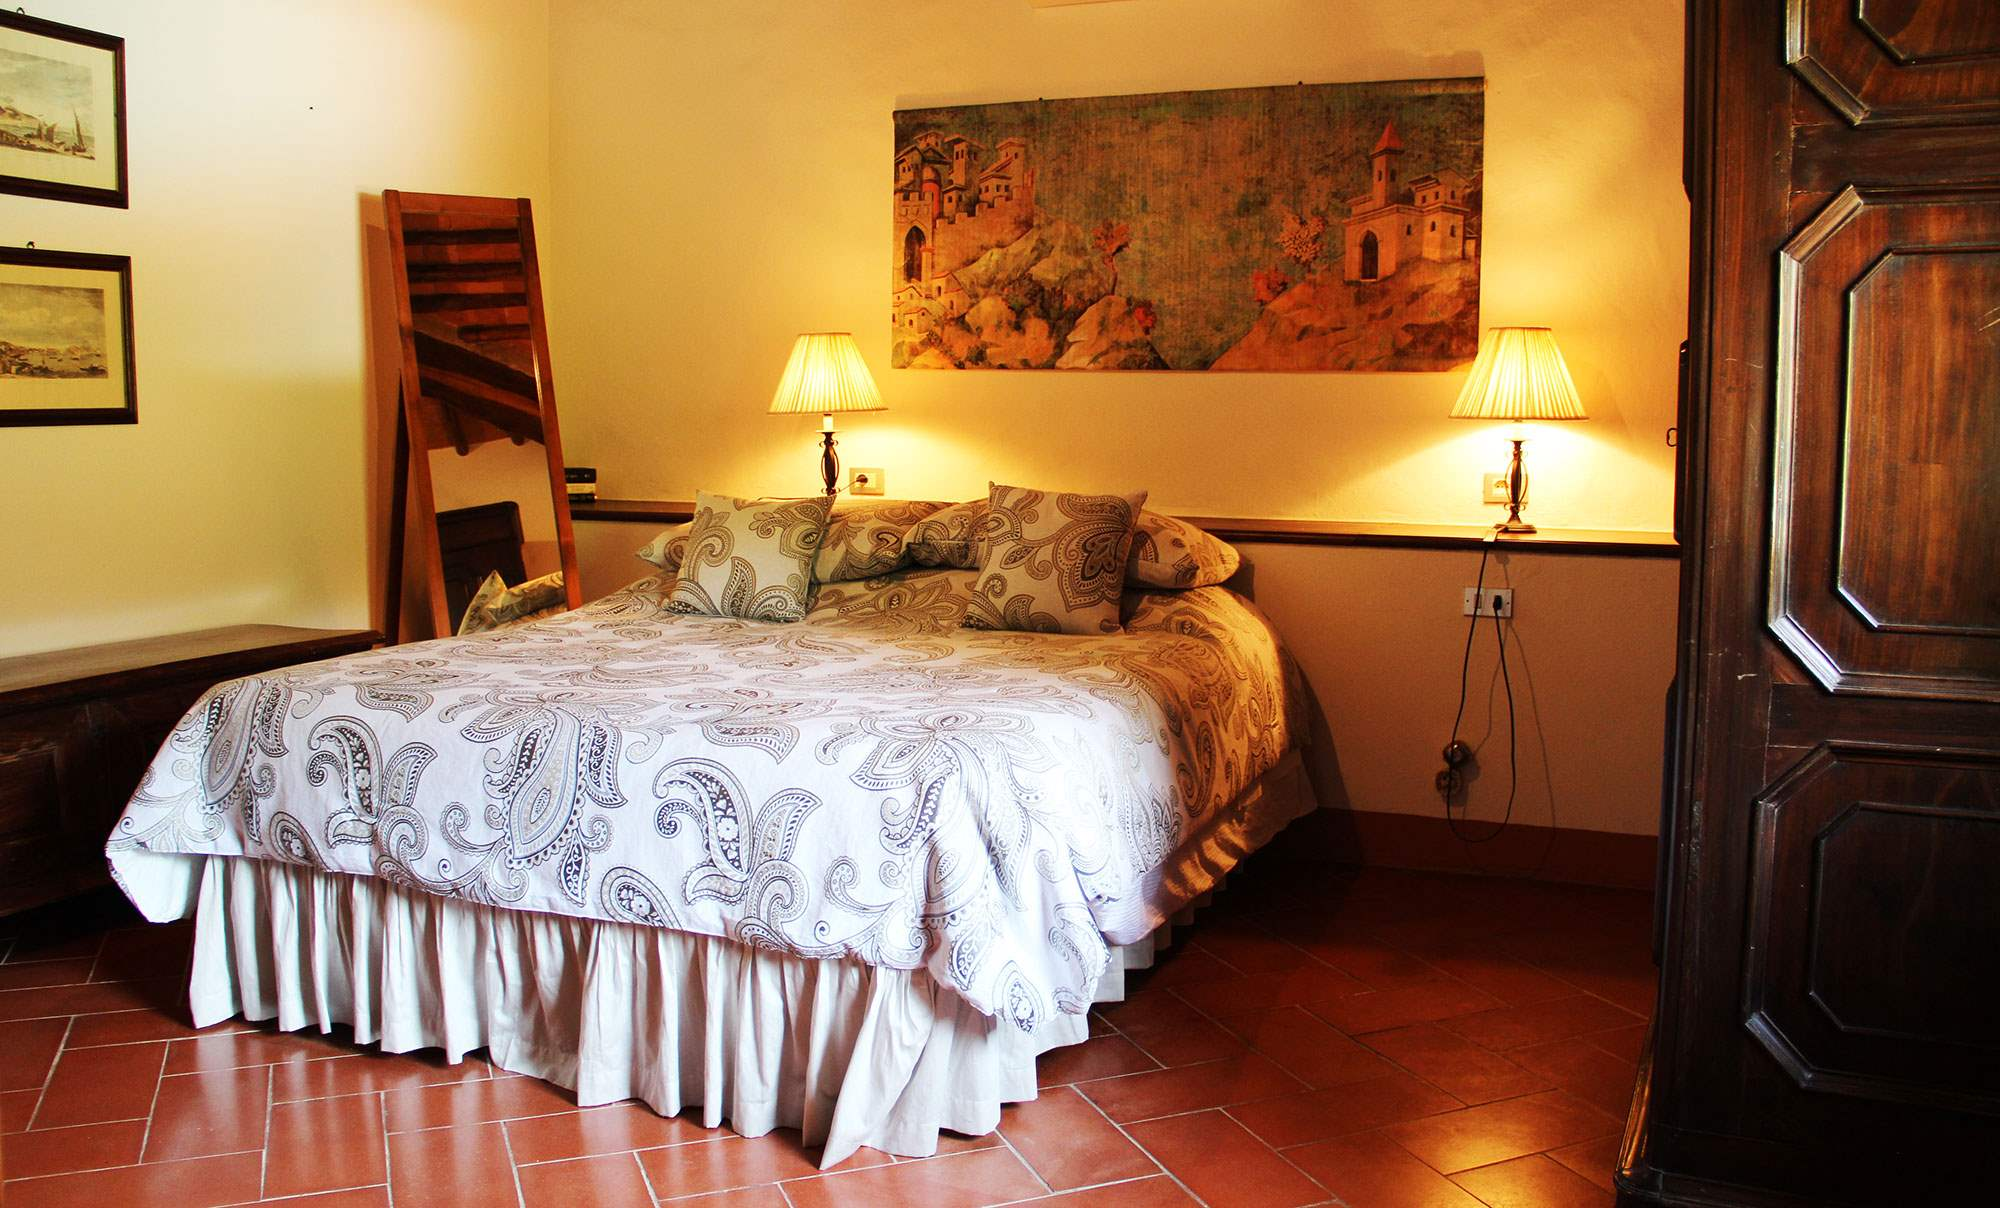 Villa Felicita, Main house only, 6 persons rate, 3 bedroom villa in Chianti & Countryside, Tuscany Photo #16